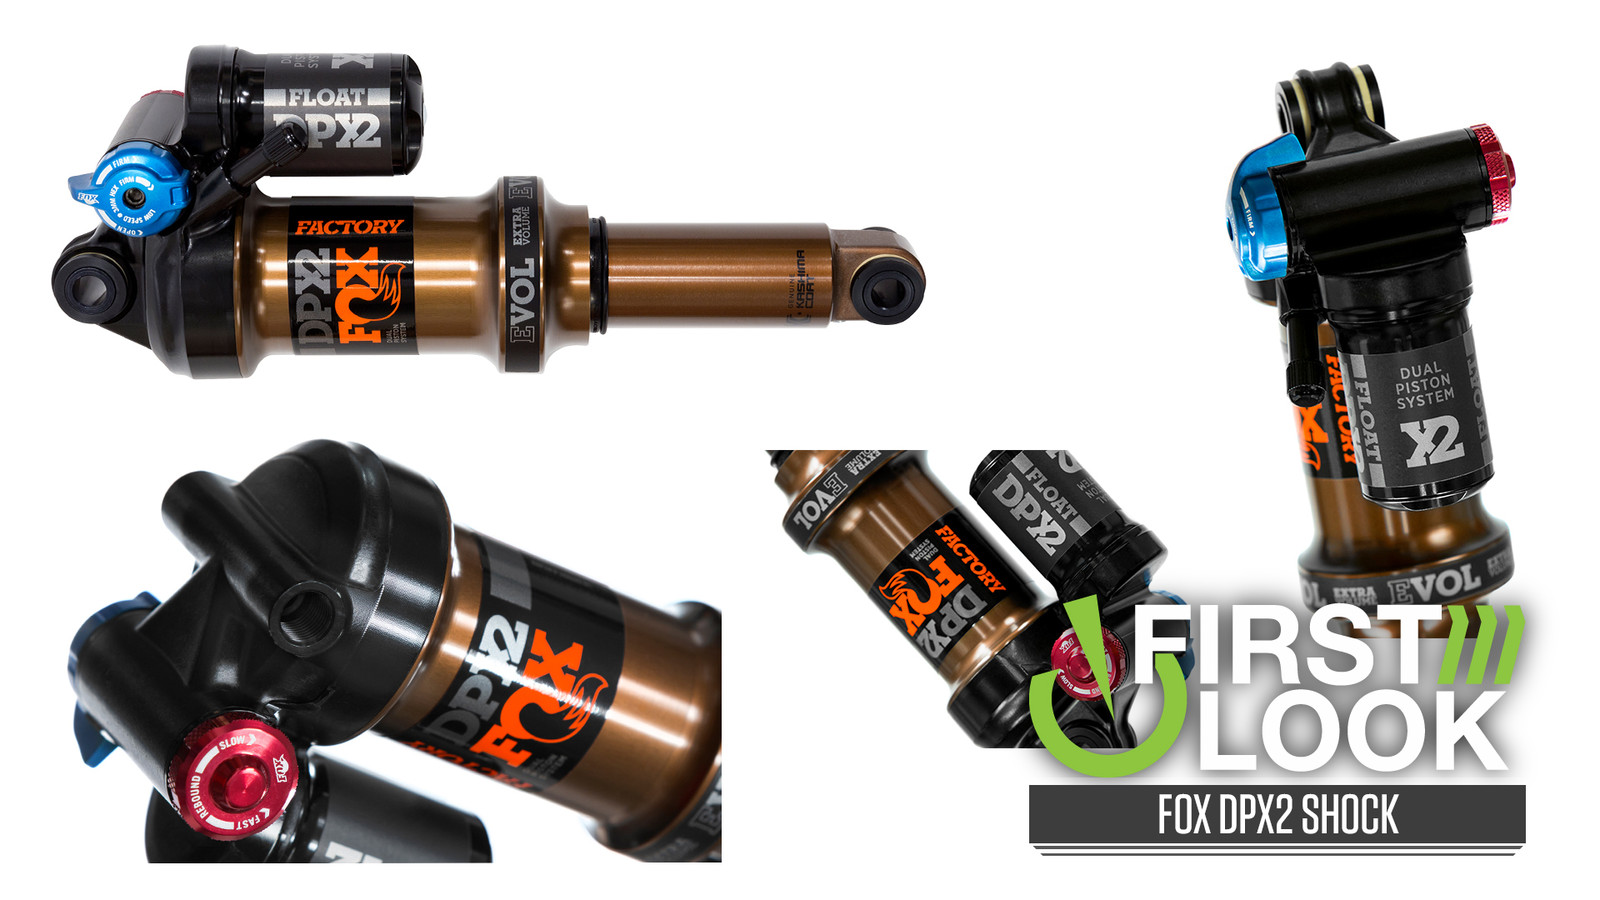 First Look: FOX DPX2 Shock